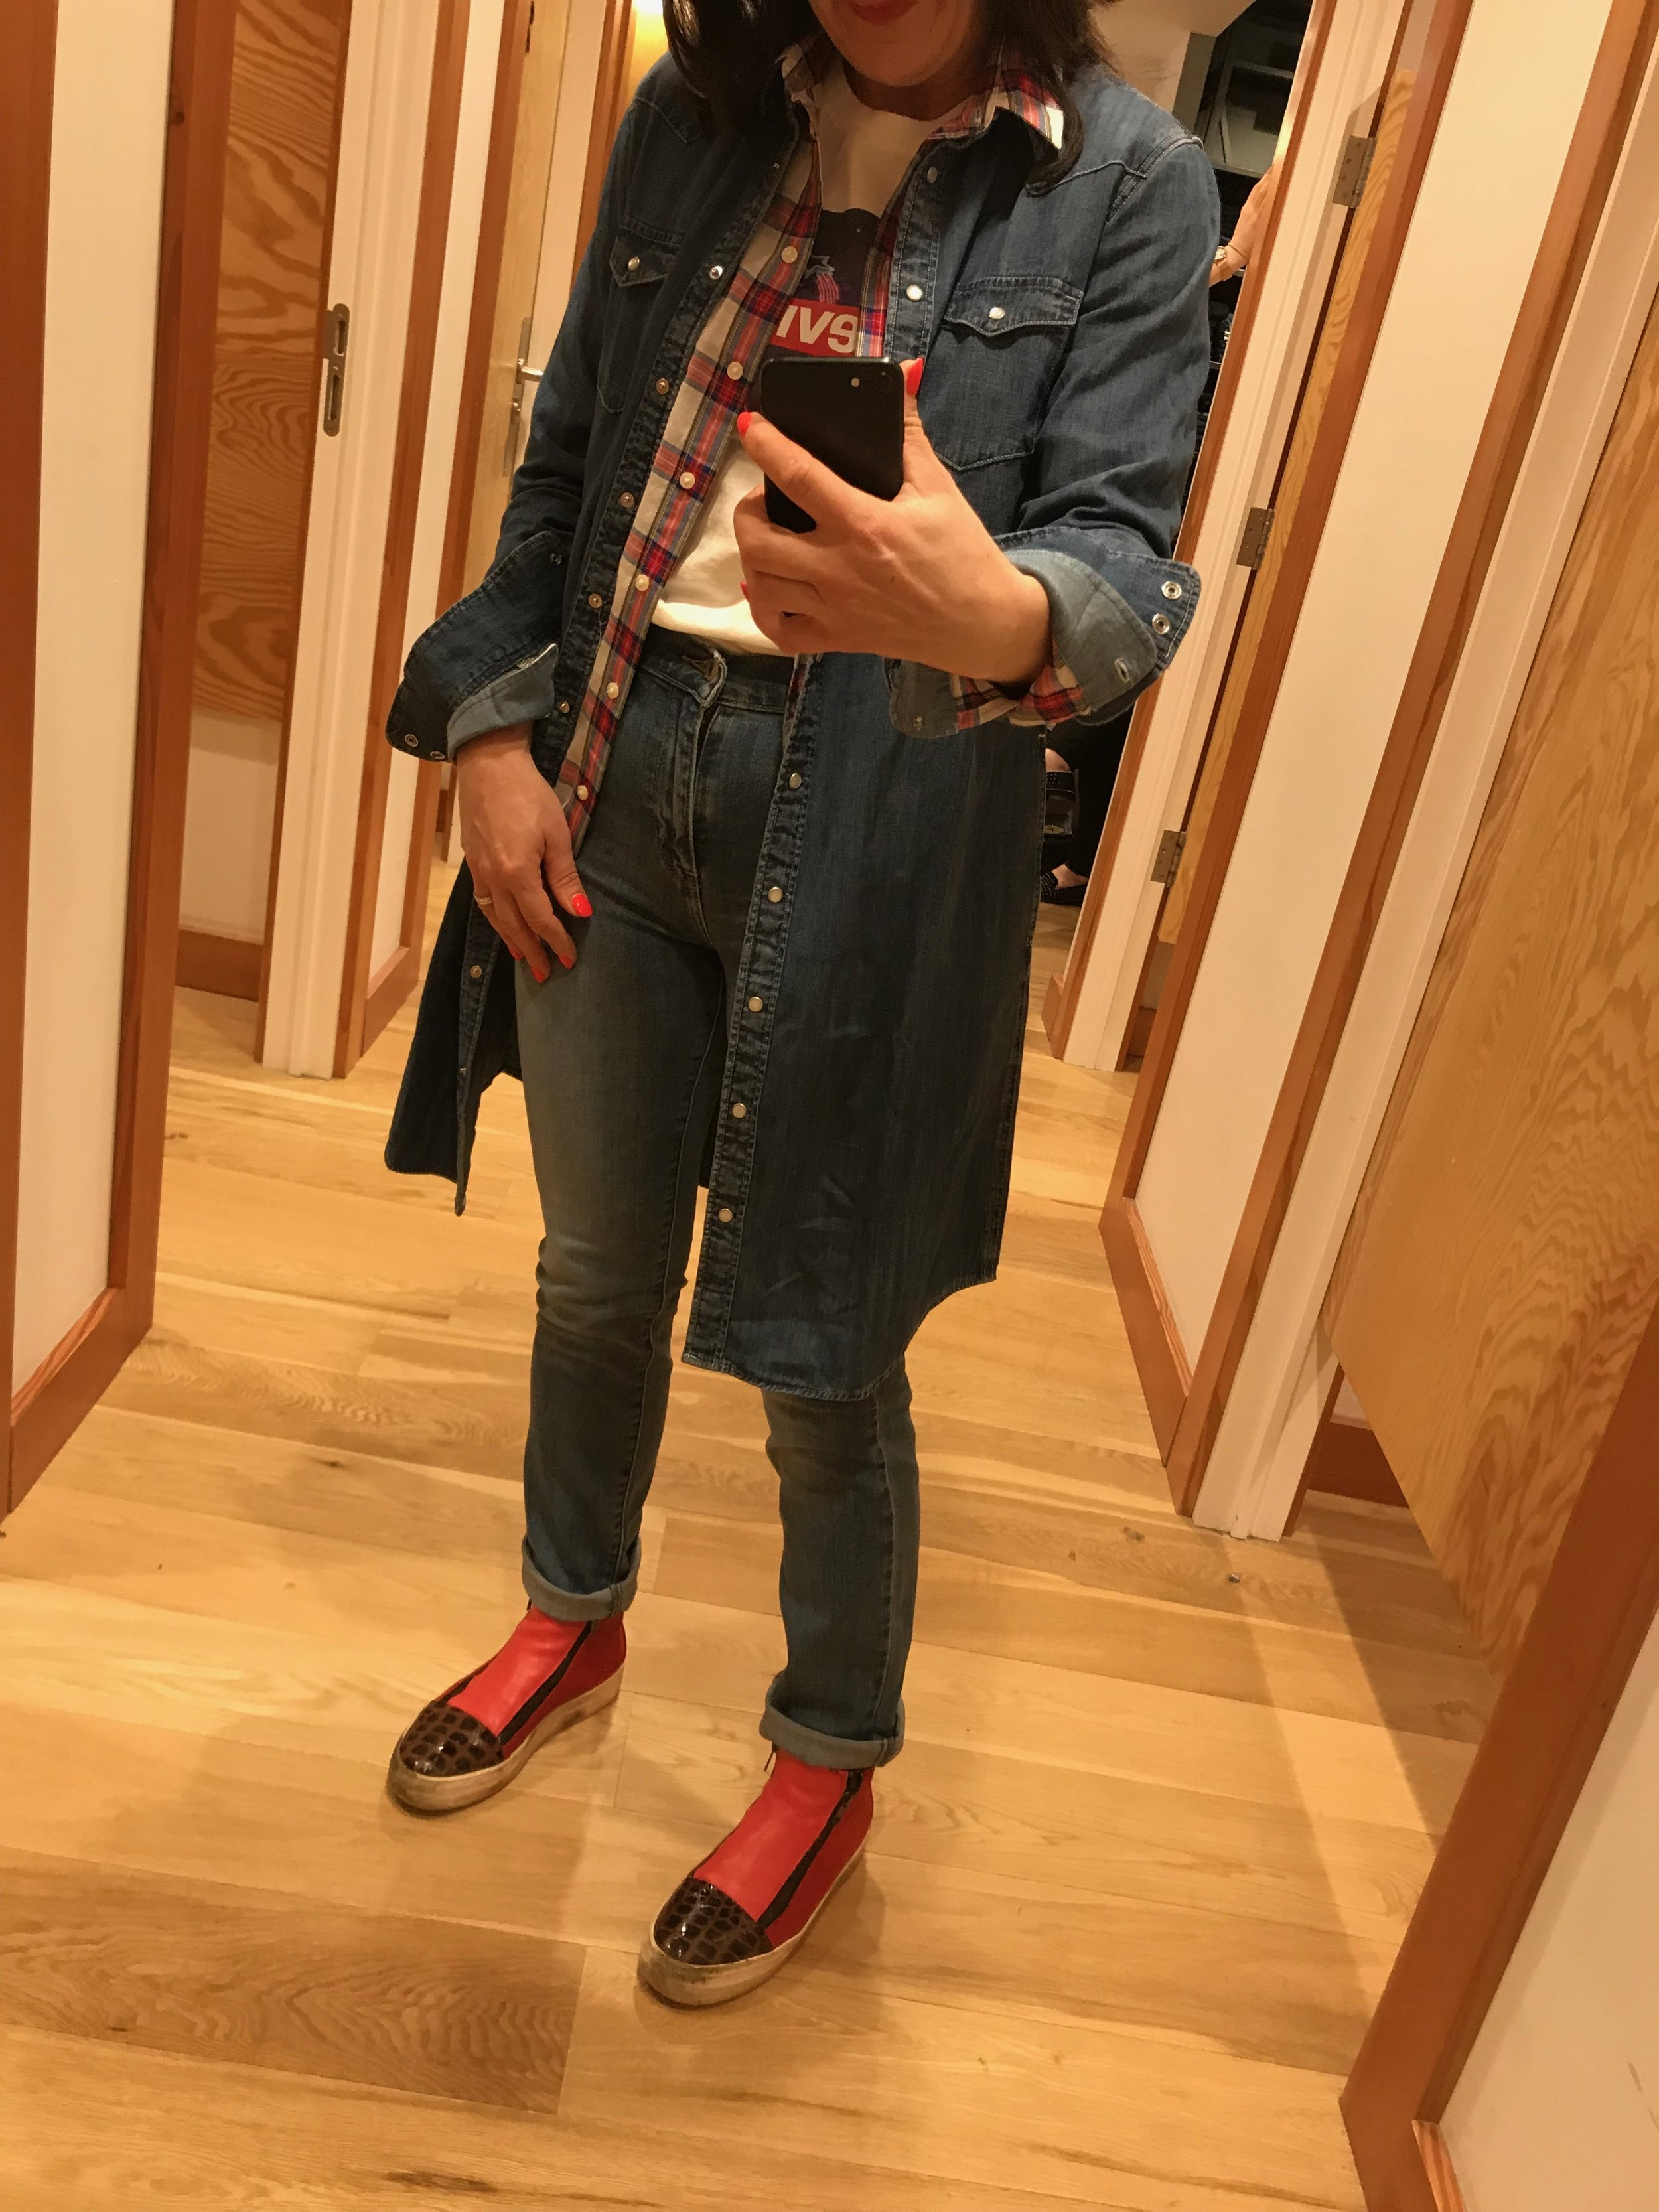 T Shirt / Denim Dress / 727 jeans / Checked shirt